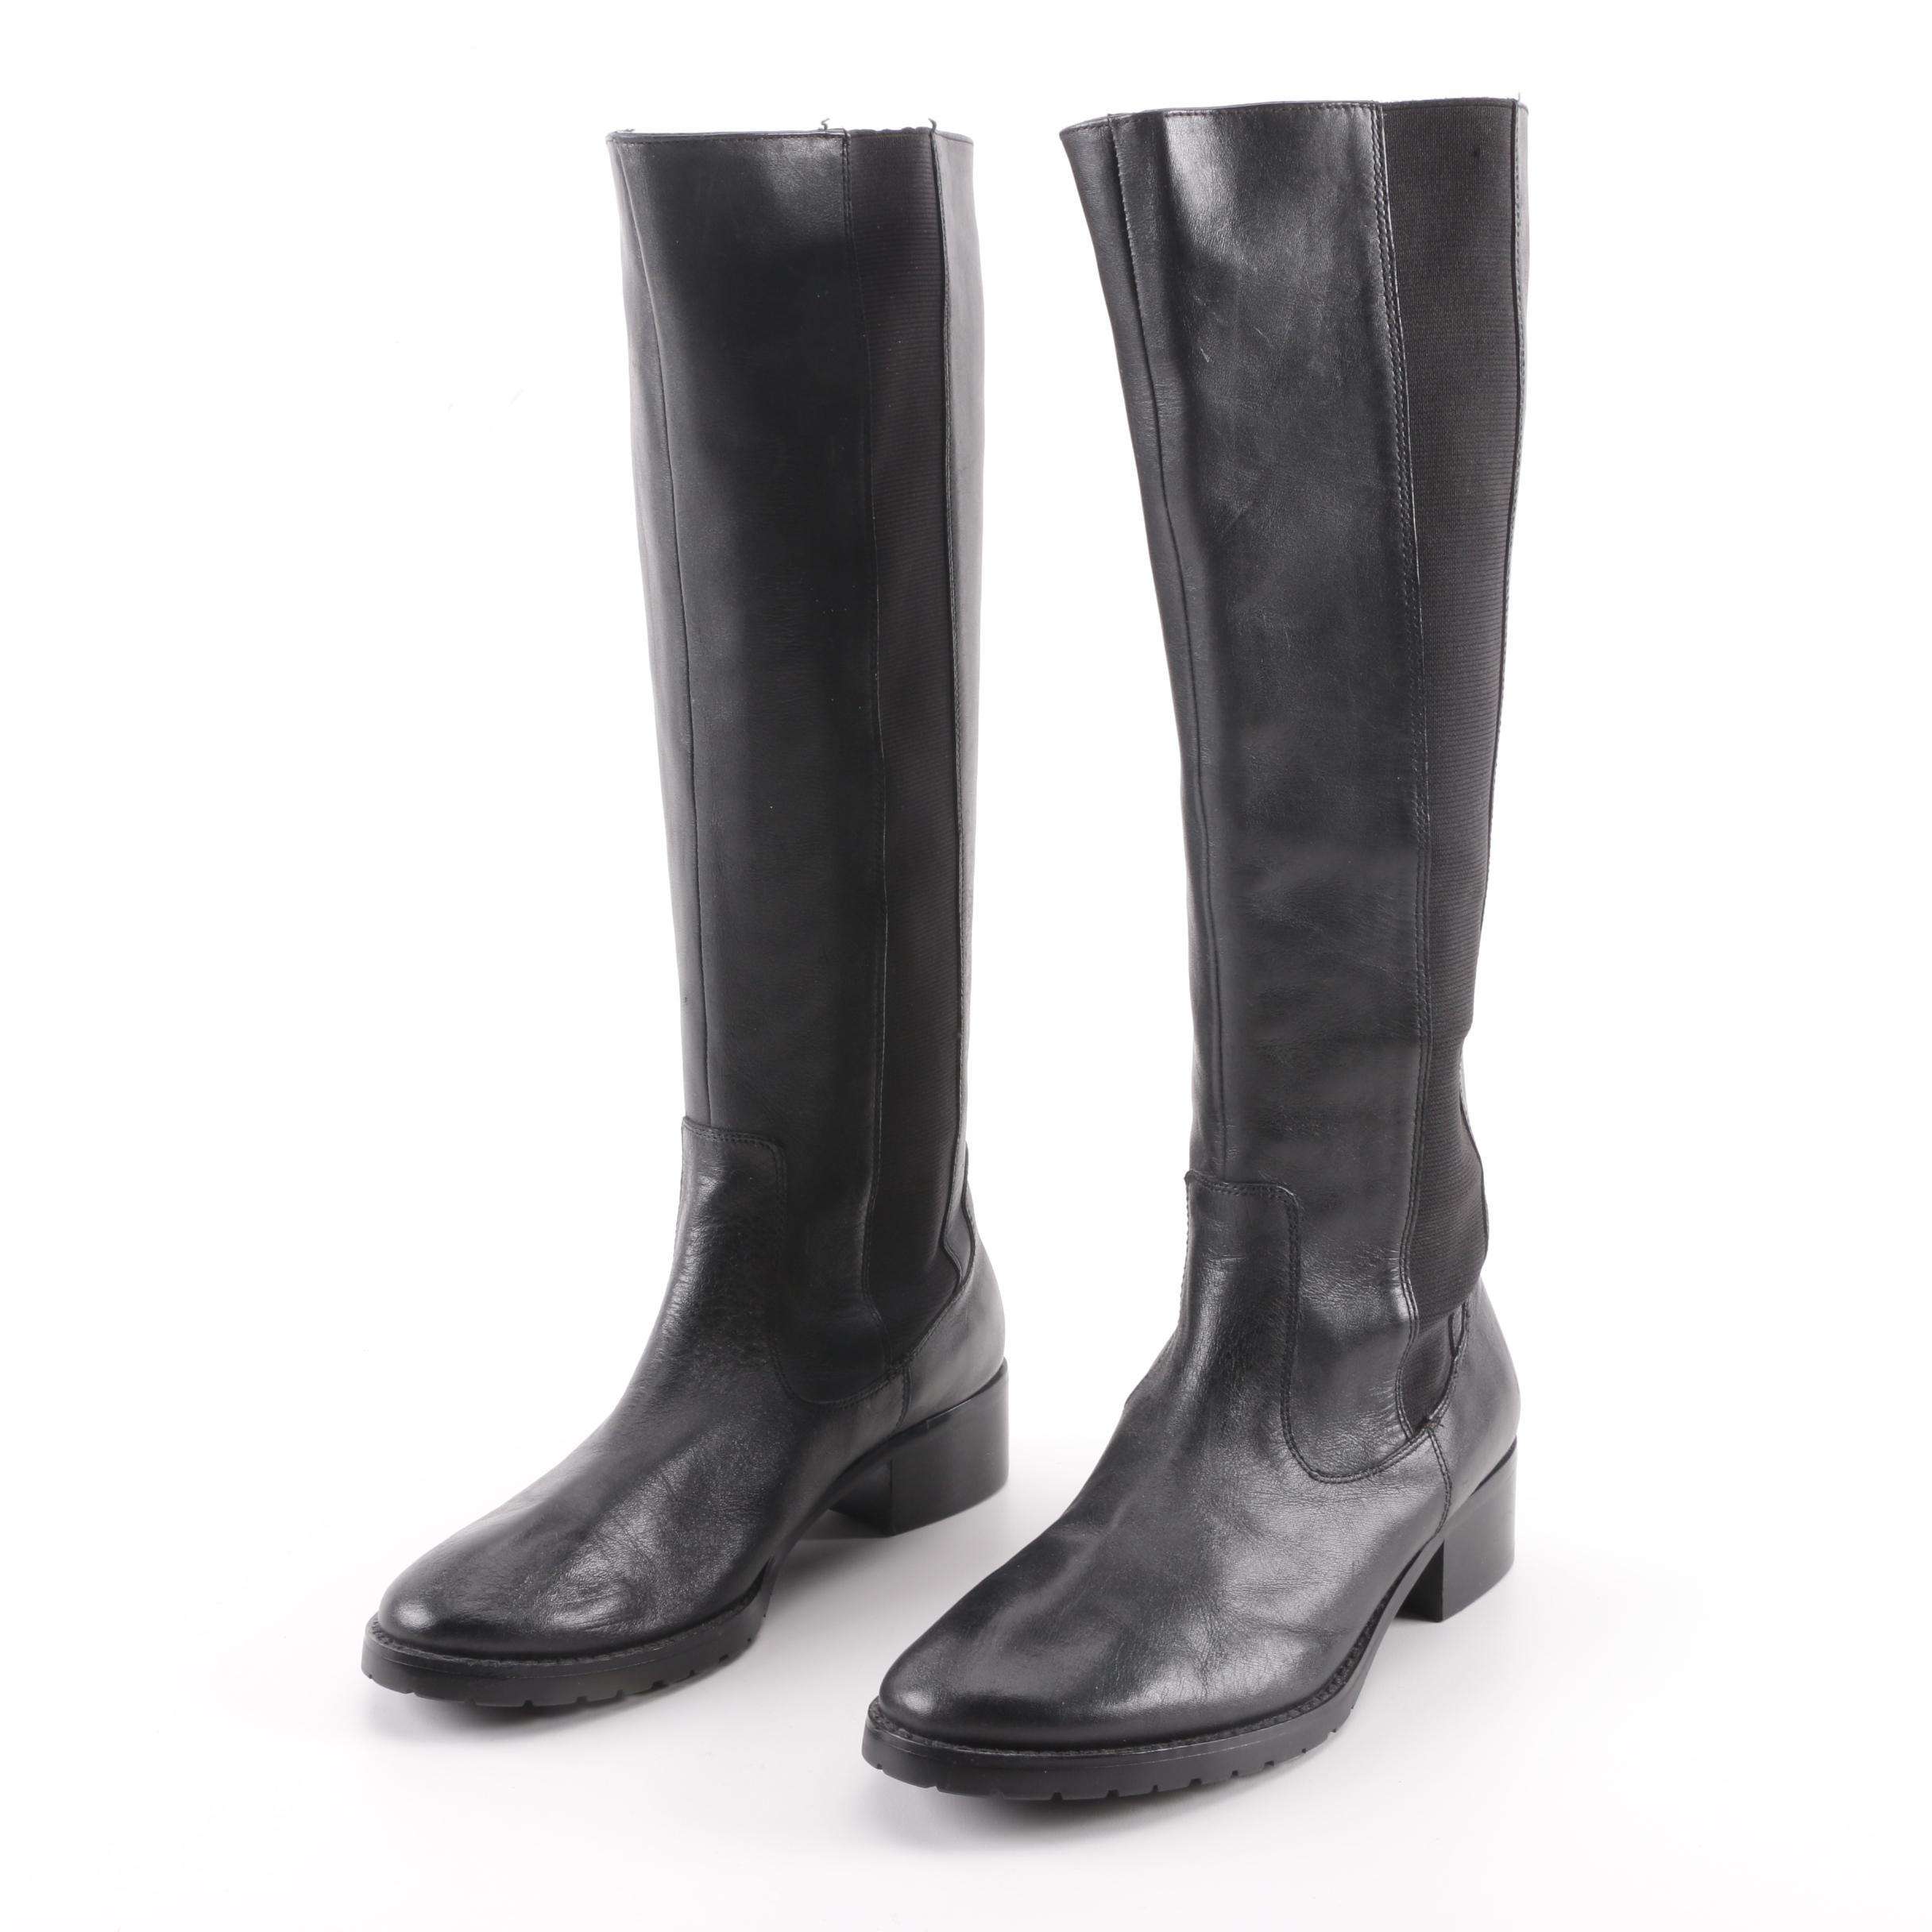 Women's Donald J Pliner Buriel Black Leather Riding Boots